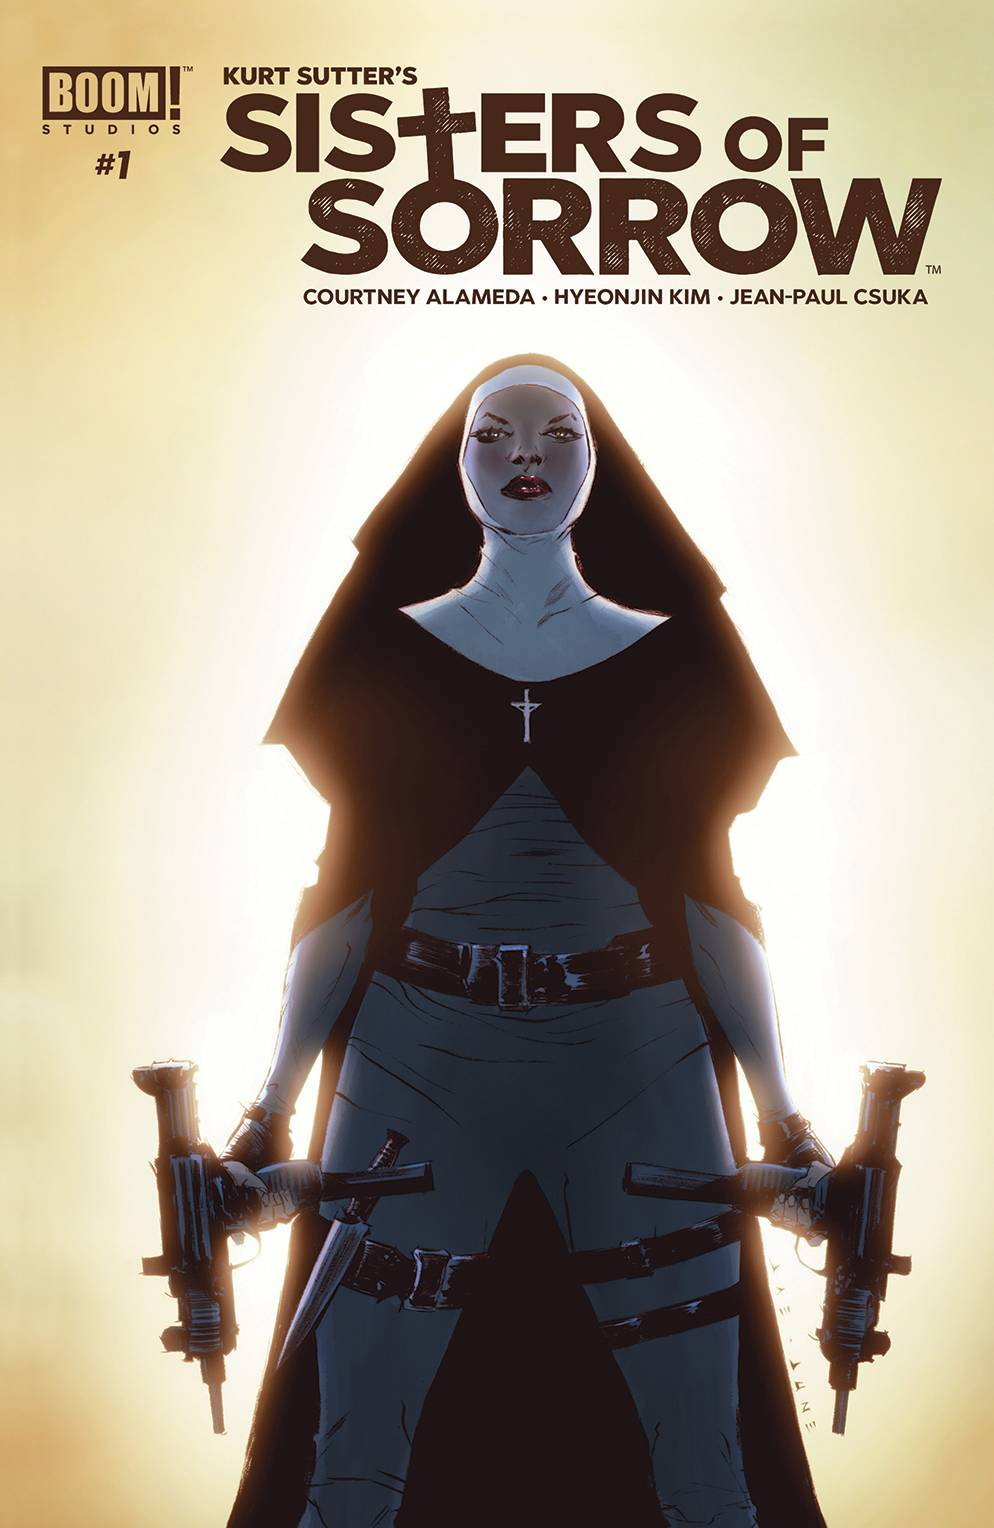 SISTERS OF SORROW #1 (OF 4) - BOOM! STUDIOSWritten by Kurt Sutter, Courtney AlamedaArt by Hyeonjin KimKurt Sutter (Sons of Anarchy, Mayans MC) brings this all-new original tale of revenge and recovery to comics with novelist Courtney Alameda (Shutter) and breakthrough artist Hyeonjin Kim.By day, Dominique, Greta, Misha, and Sarah run a nonprofit women's shelter. At night, they each don a nun's habit and move through Los Angeles hunting down violent abusers who have escaped justice.Their increasingly public vigilantism has earned them the nickname Sisters of Sorrow, and has drawn the ire of L.A.'s notorious anti-crime task force.